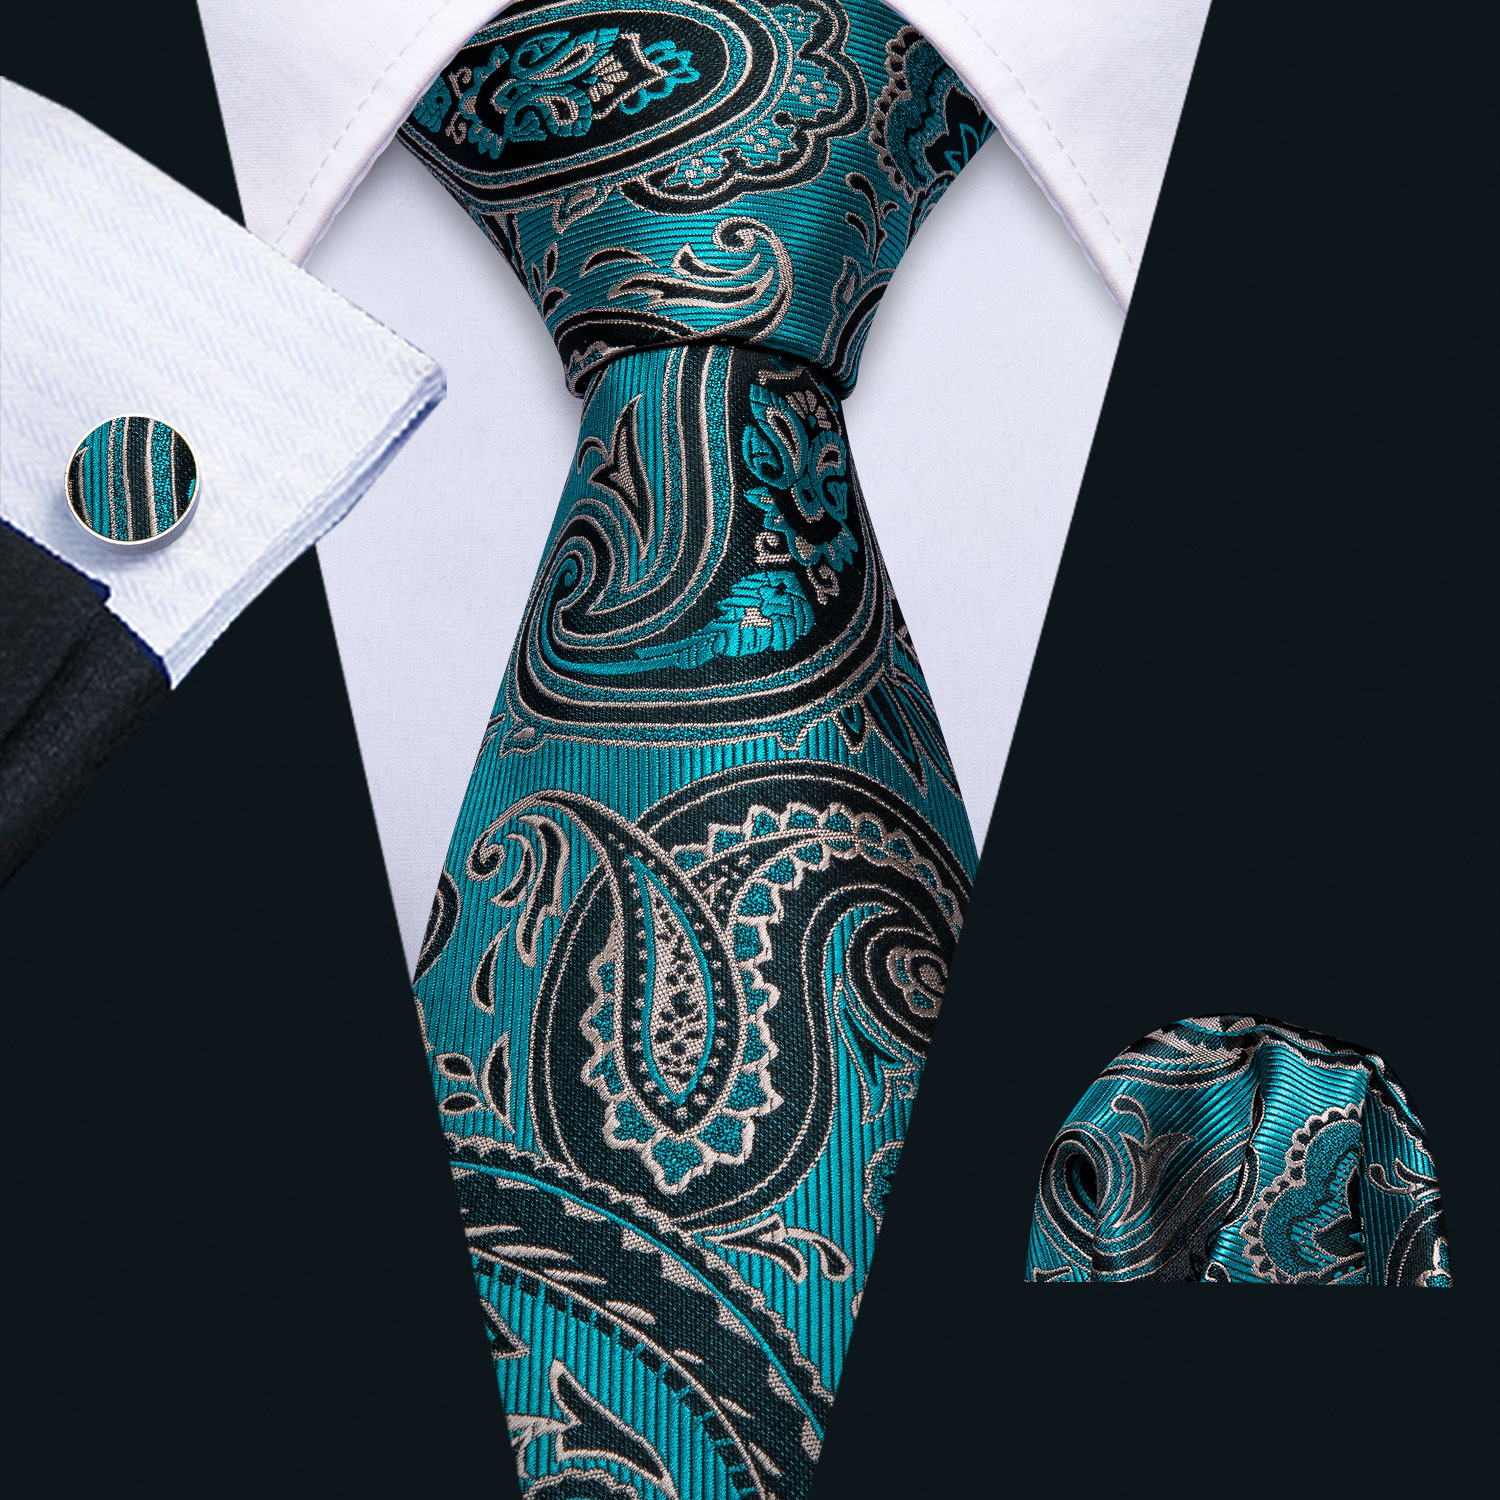 2019 Mens Wedding Tie Teal Paisley Silk Tie Hanky Set Barry.Wang Jacquard Woven Fashion Designer Neck Ties For Men Party FA-5139